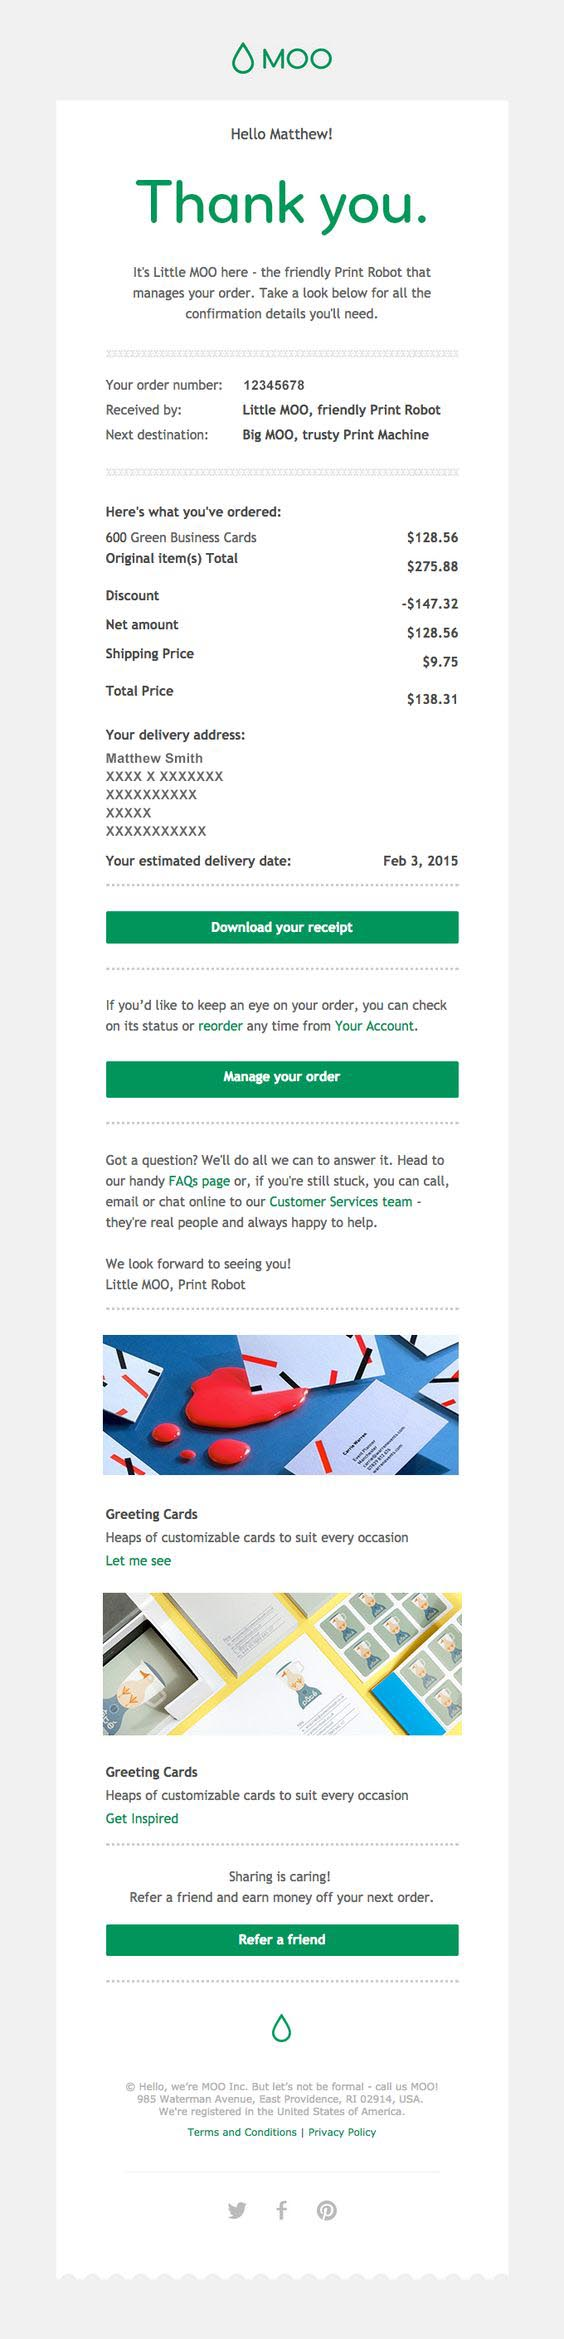 Order confirmation email from MOO